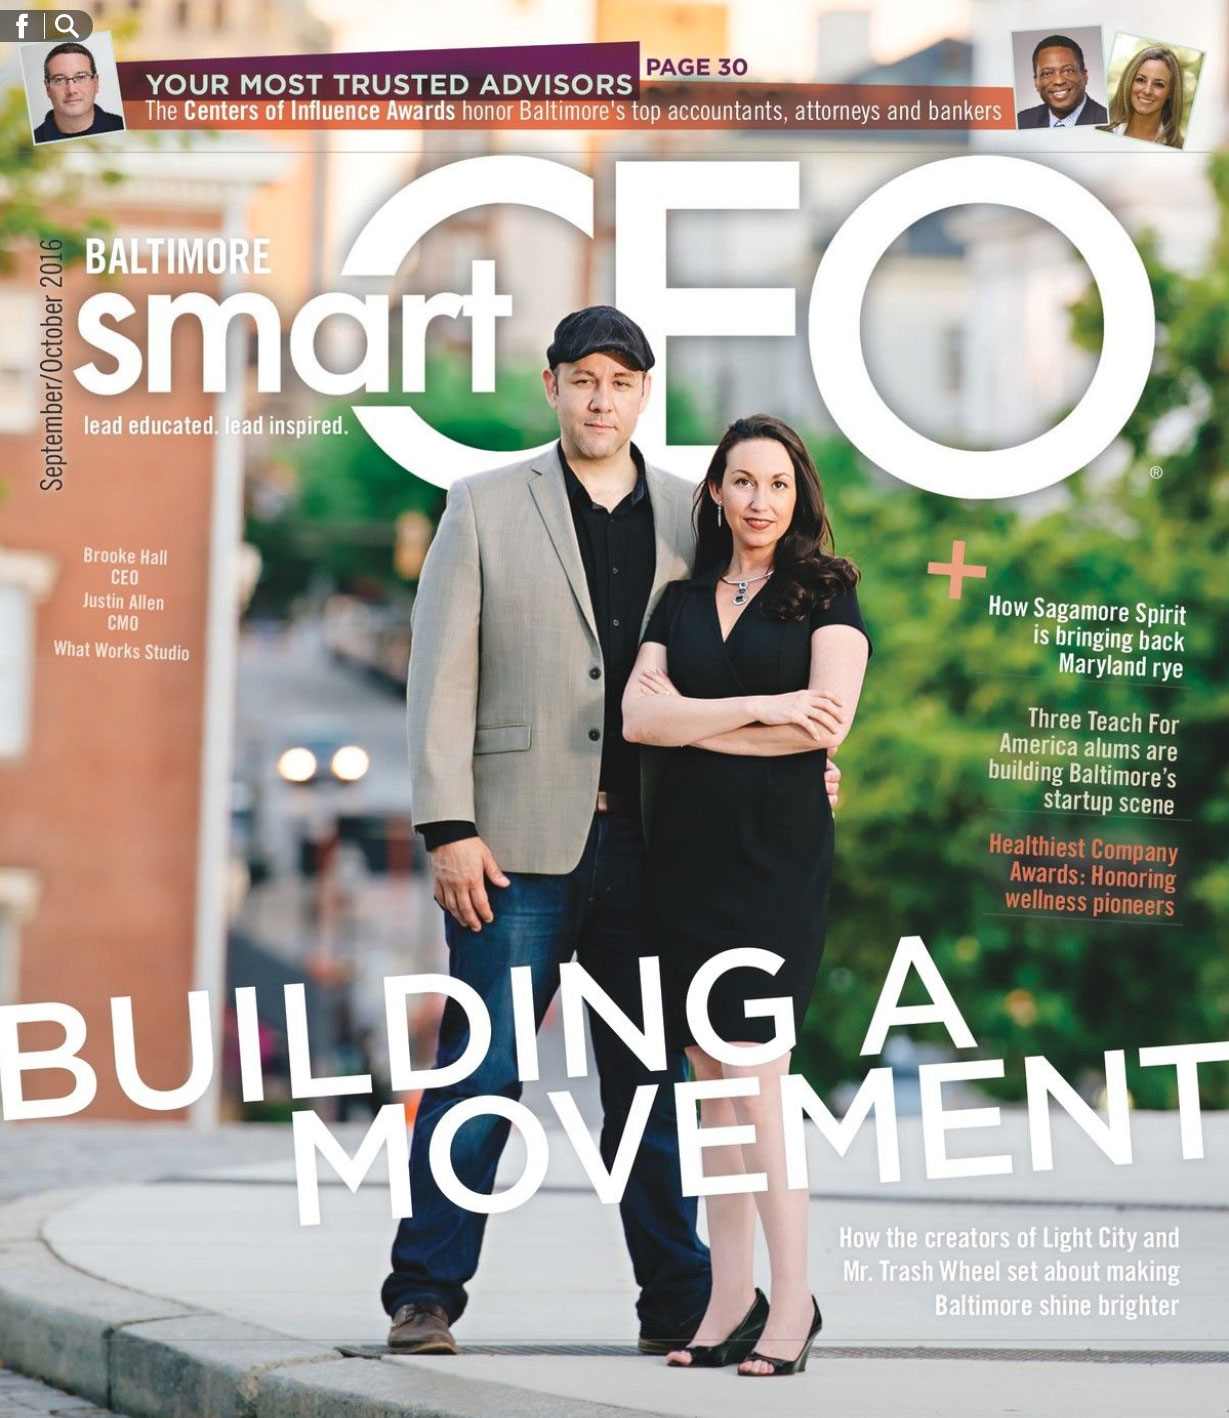 Brooke Hall and Justin Allen on the Cover of SmartCEO, Light City